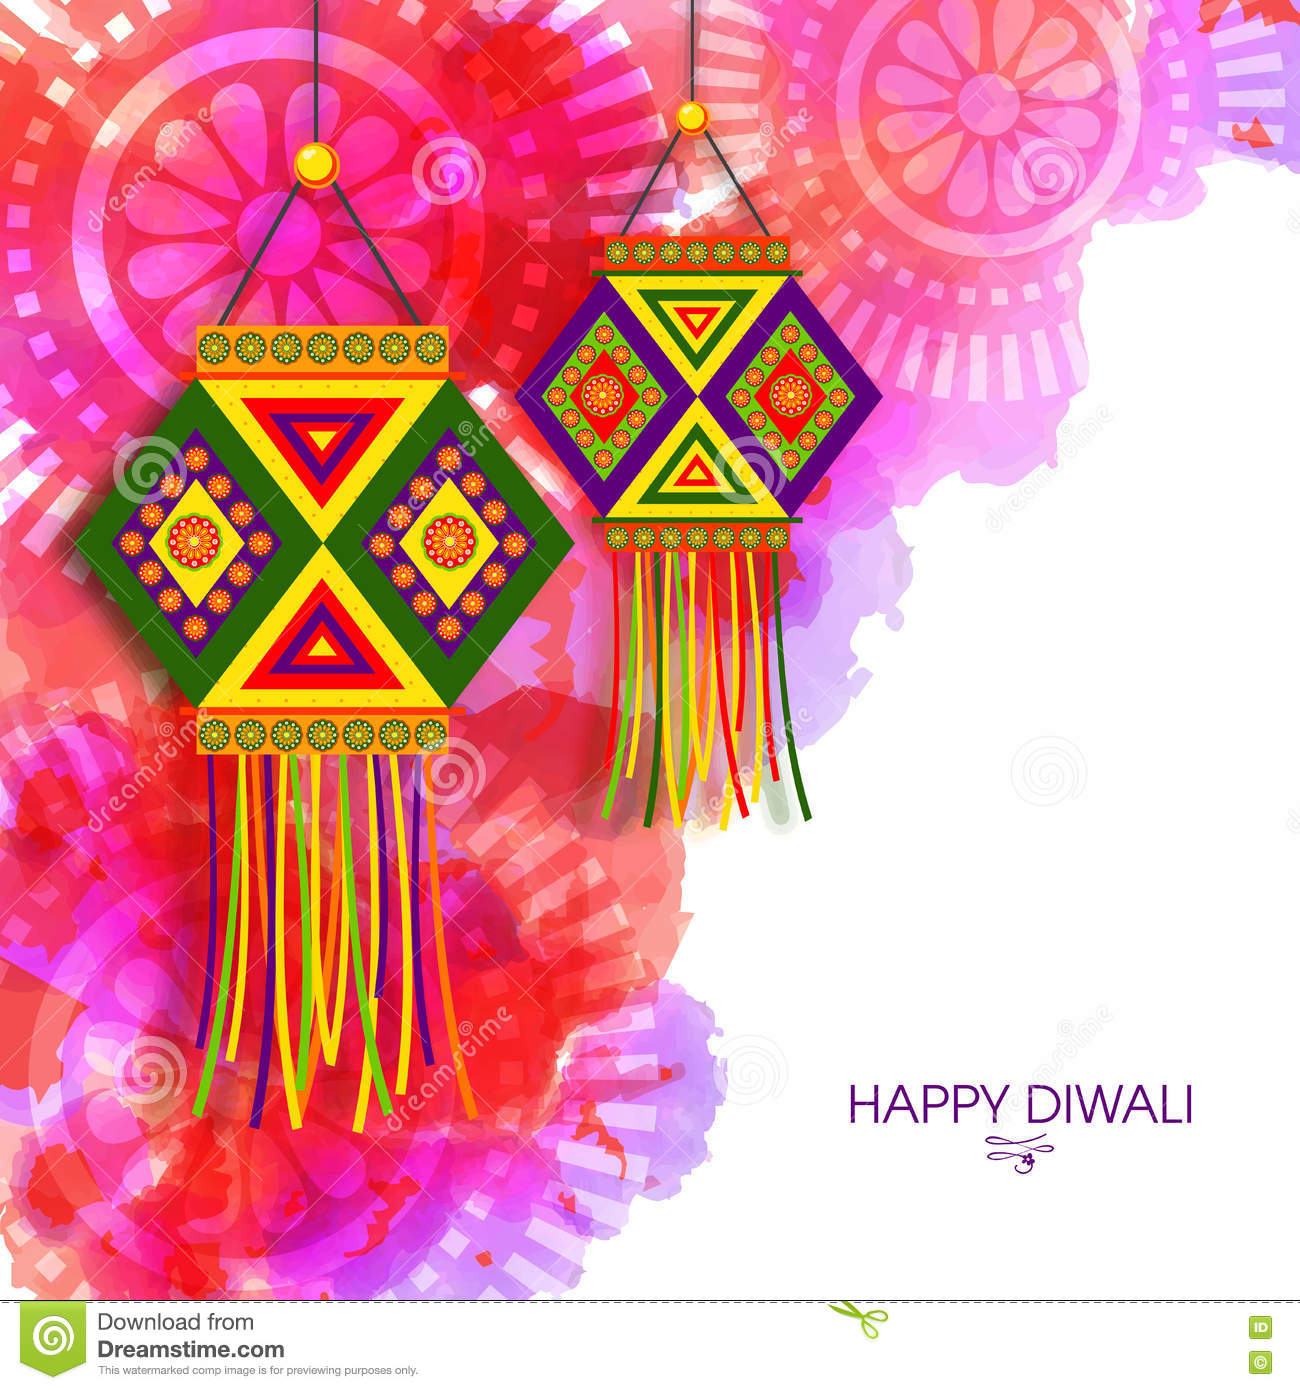 Greeting Card With Lamps (Kandil) For Diwali. Stock Photo